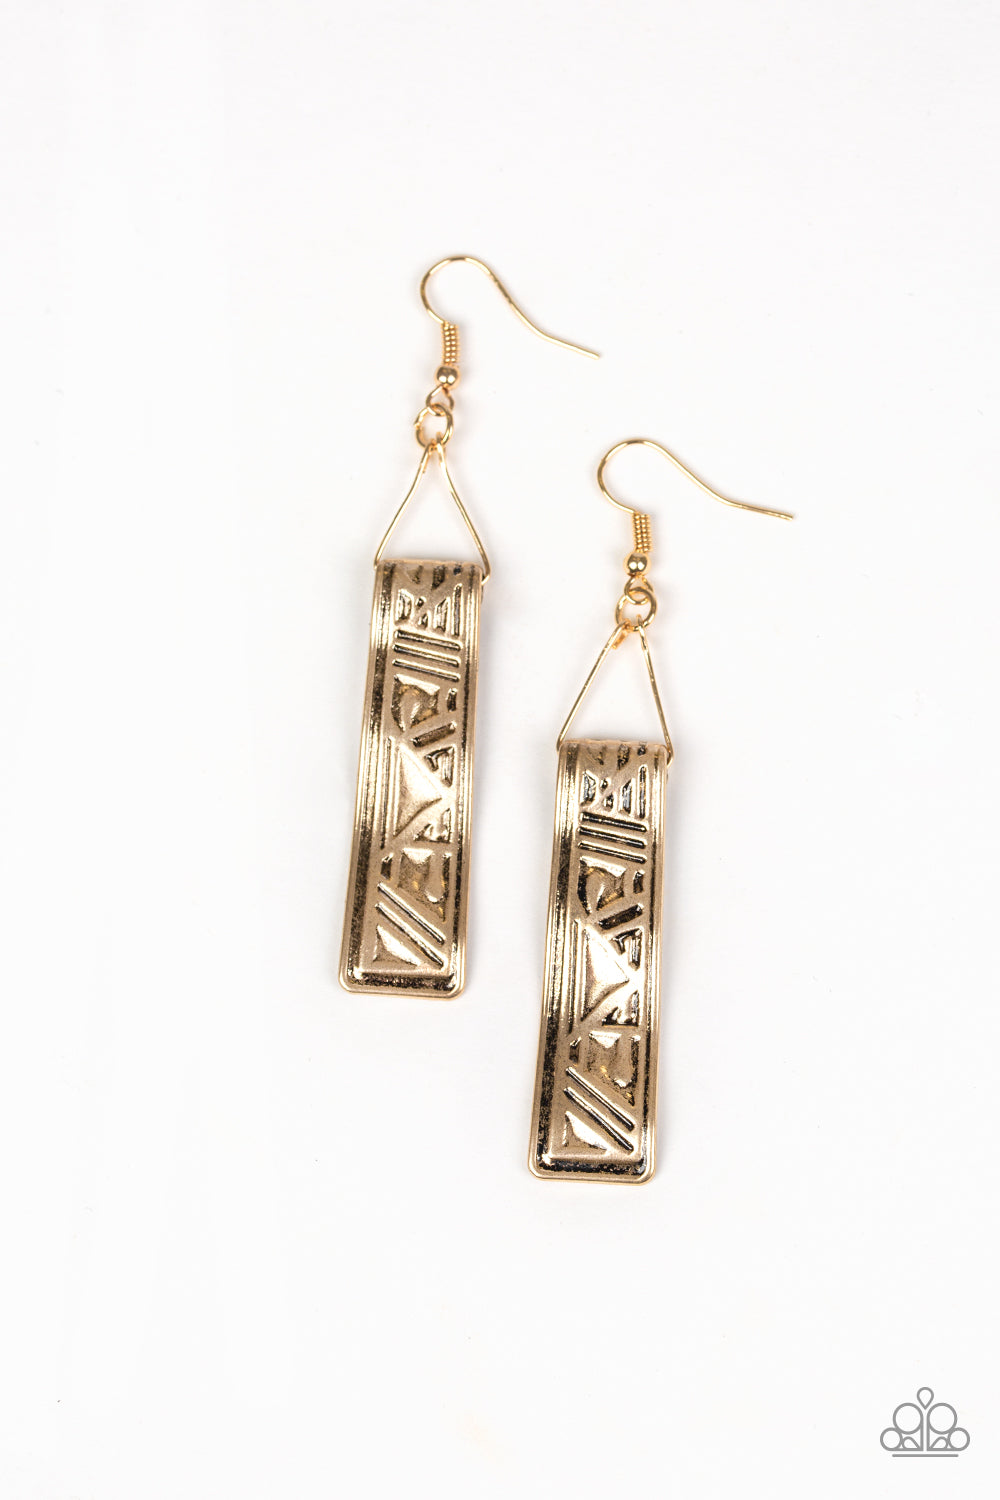 Paparazzi Accessories - Ancient Artifacts - Gold Earrings - JMJ Jewelry Collection